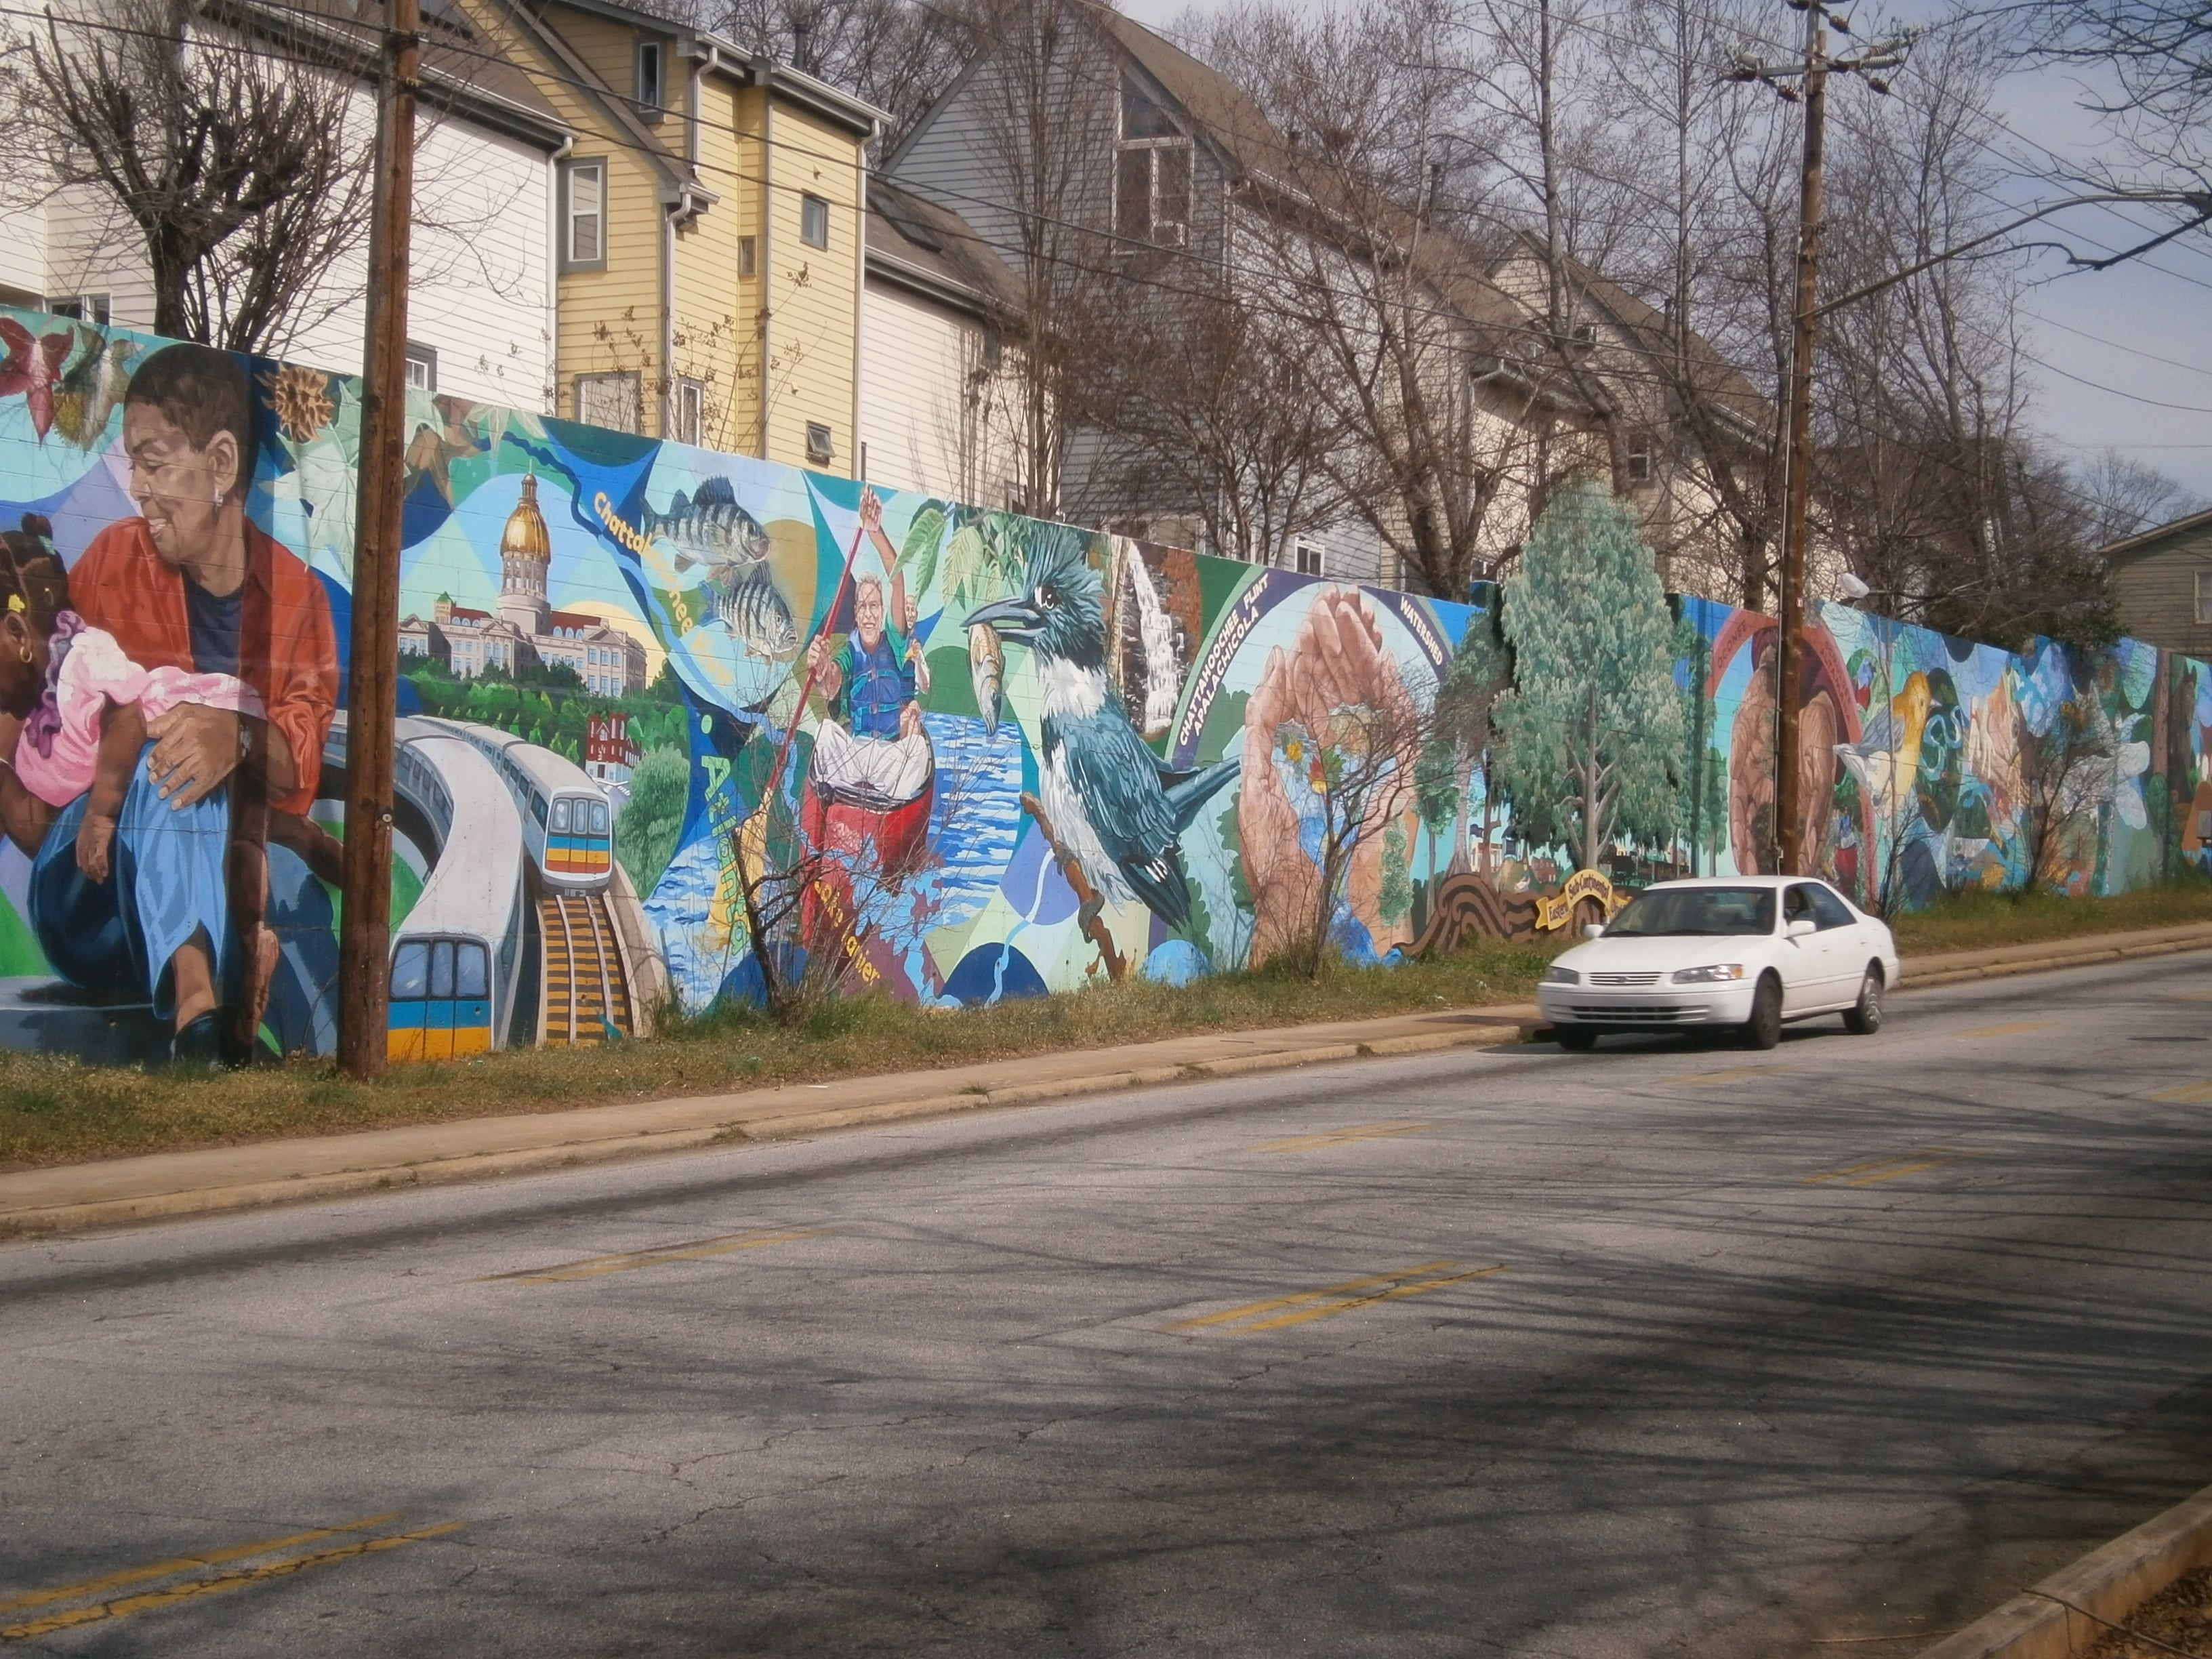 Atlanta murals vickie martin conison for A perfect day mural